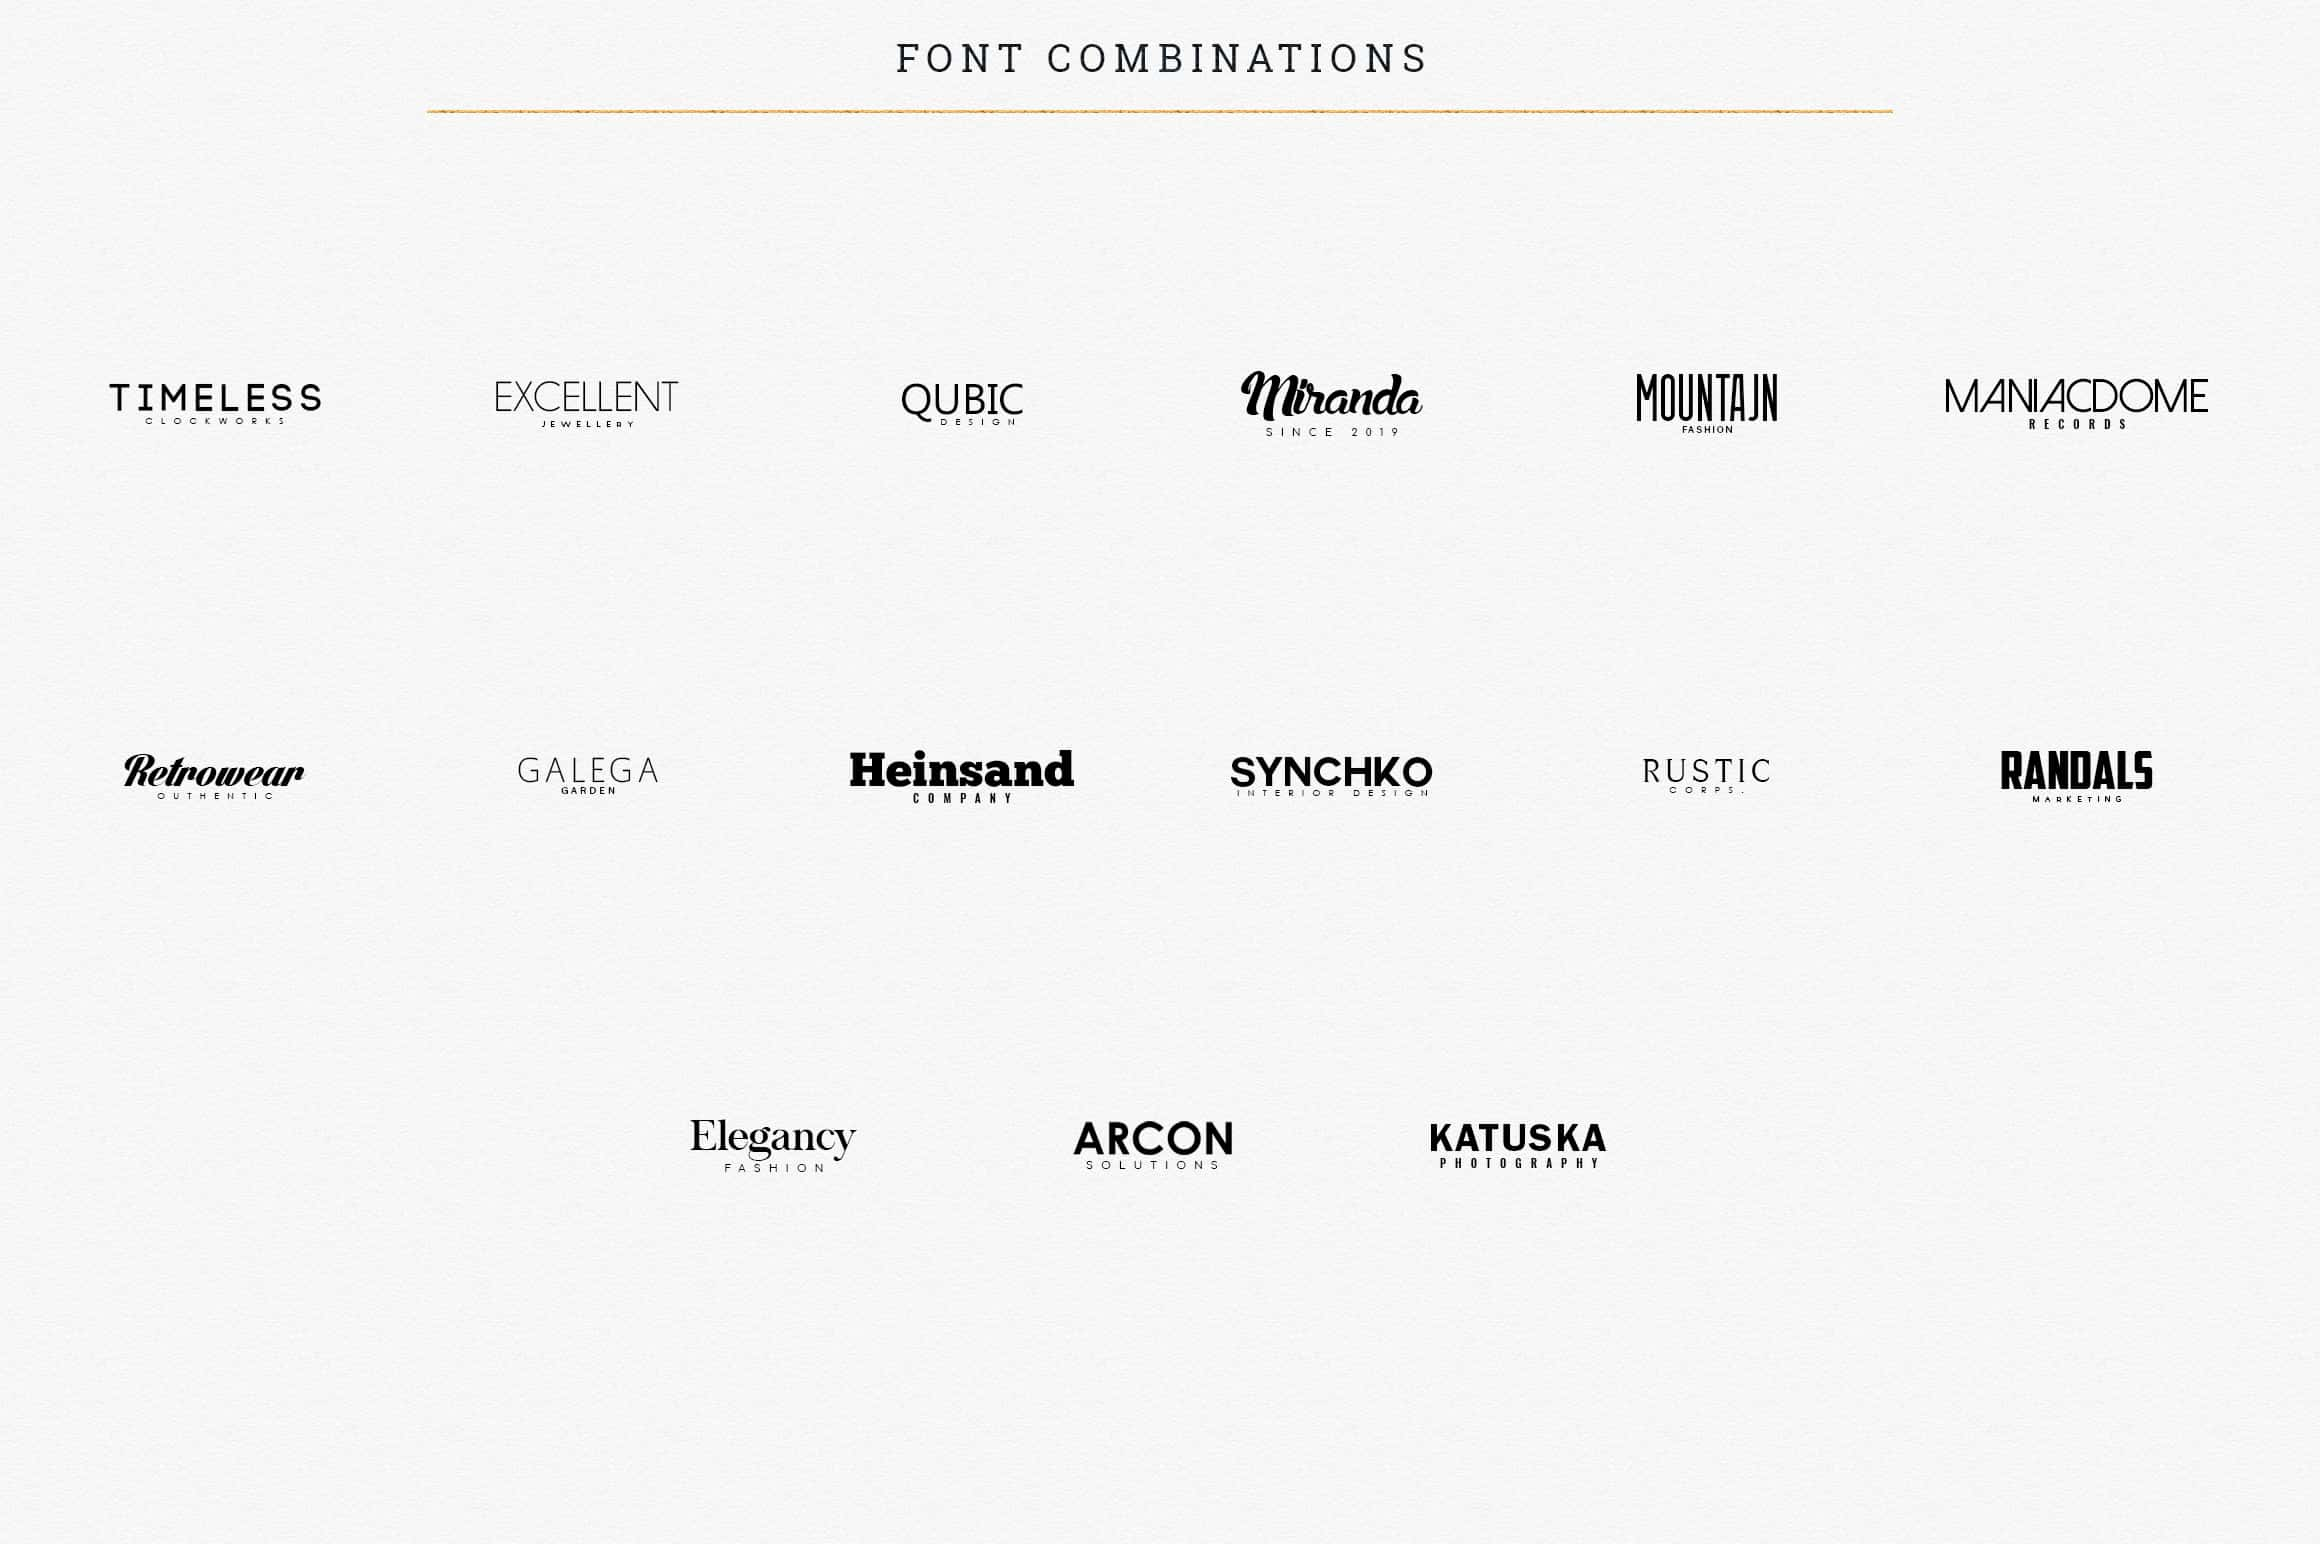 Font options and their combinations with each other.